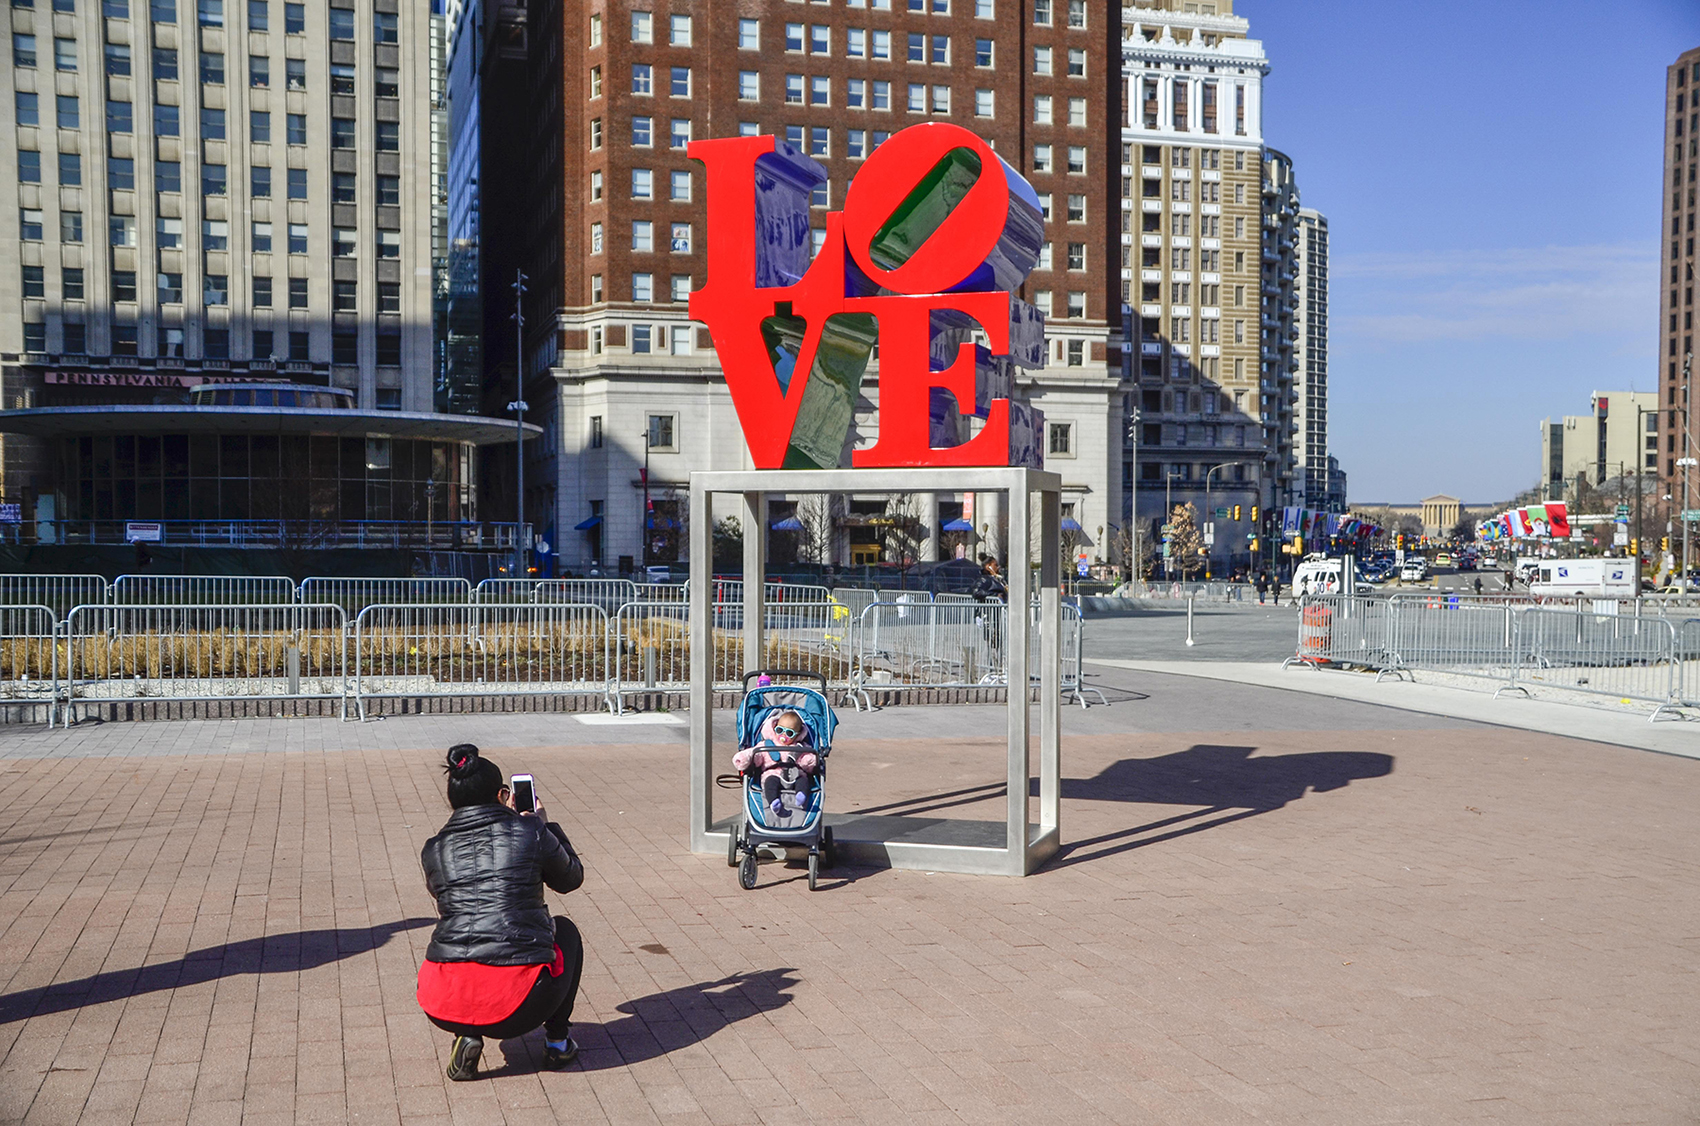 Photo being taken at the LOVE sculpture in LOVE Park, Philadelphia